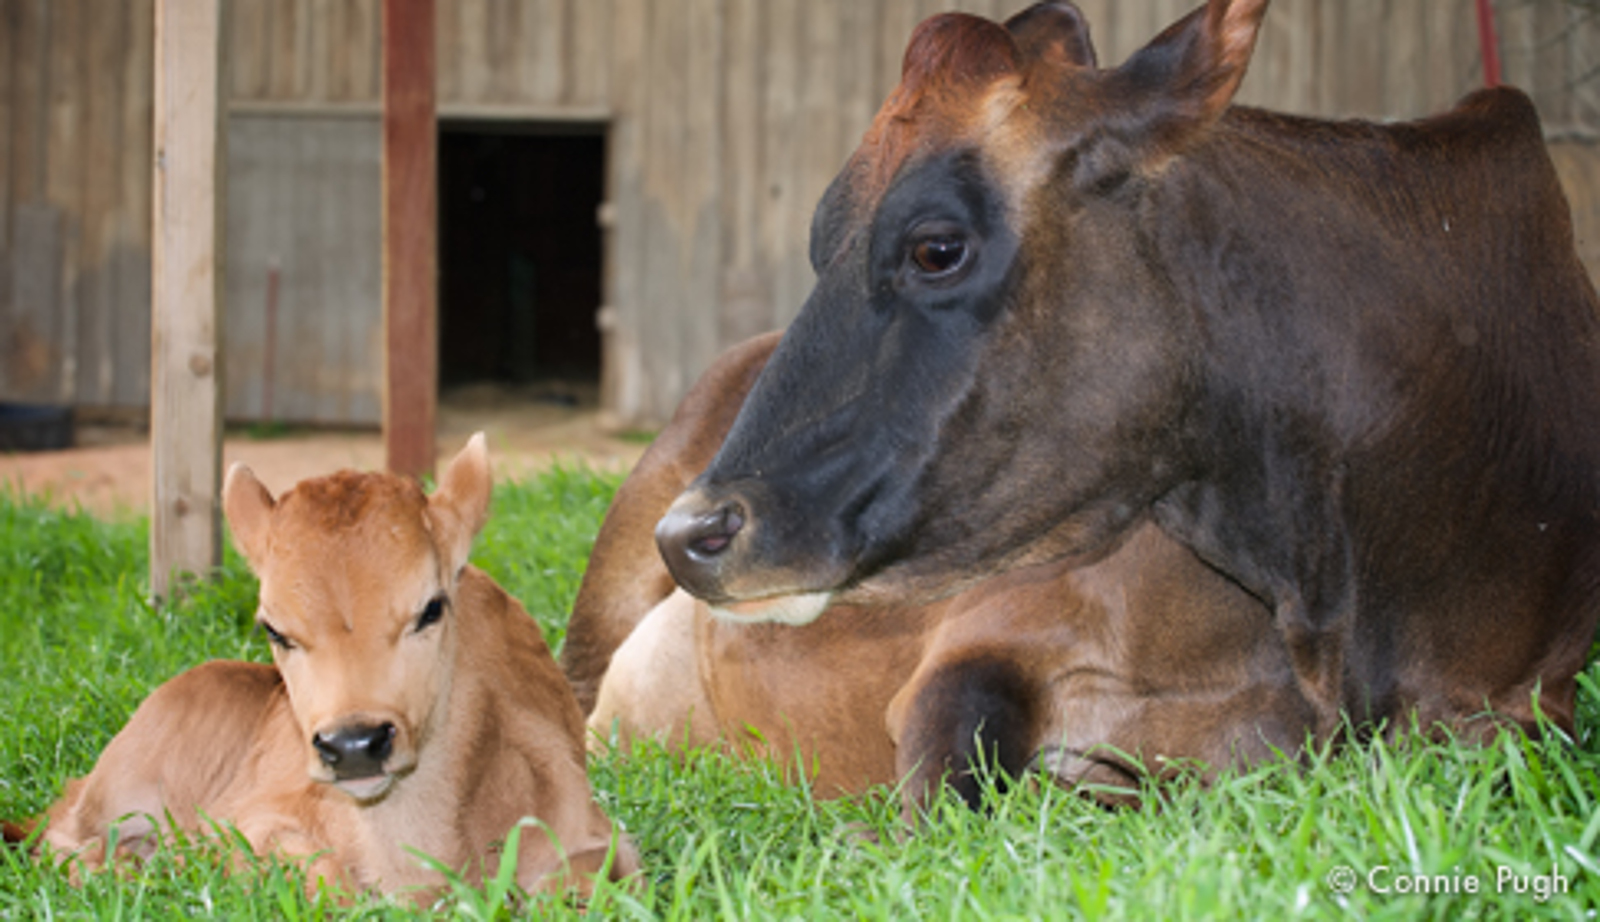 6 Amazing Ways Farm Animal Moms Show Love for Their Babies